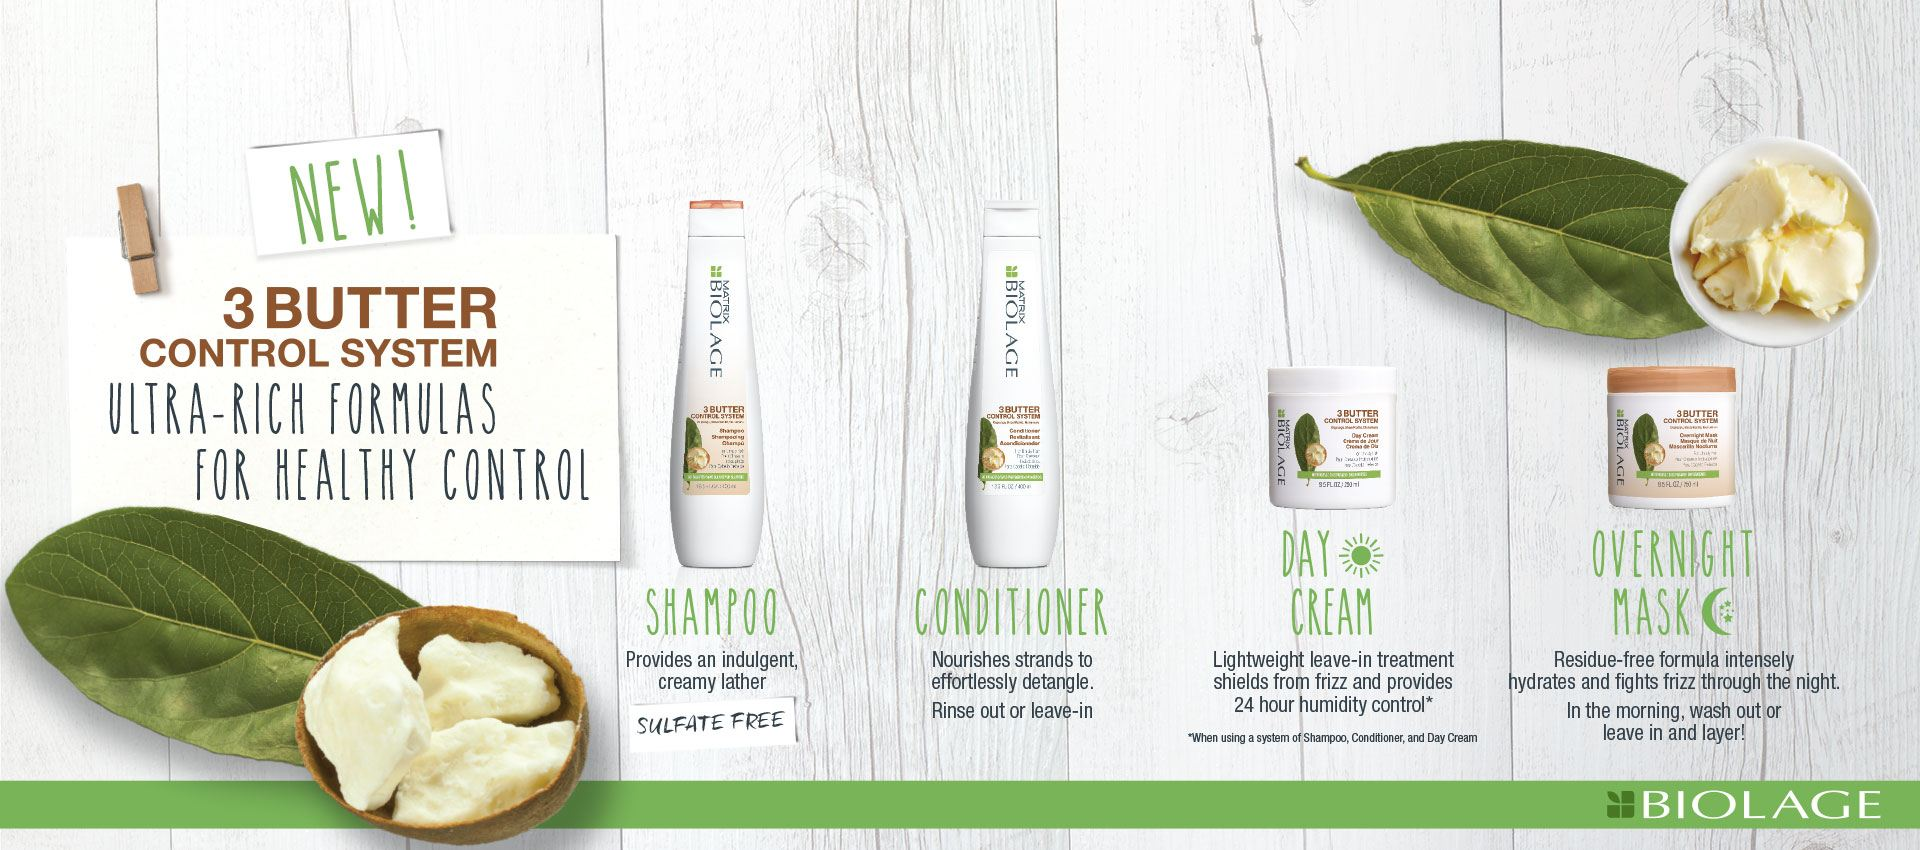 Biolage 3butter control system